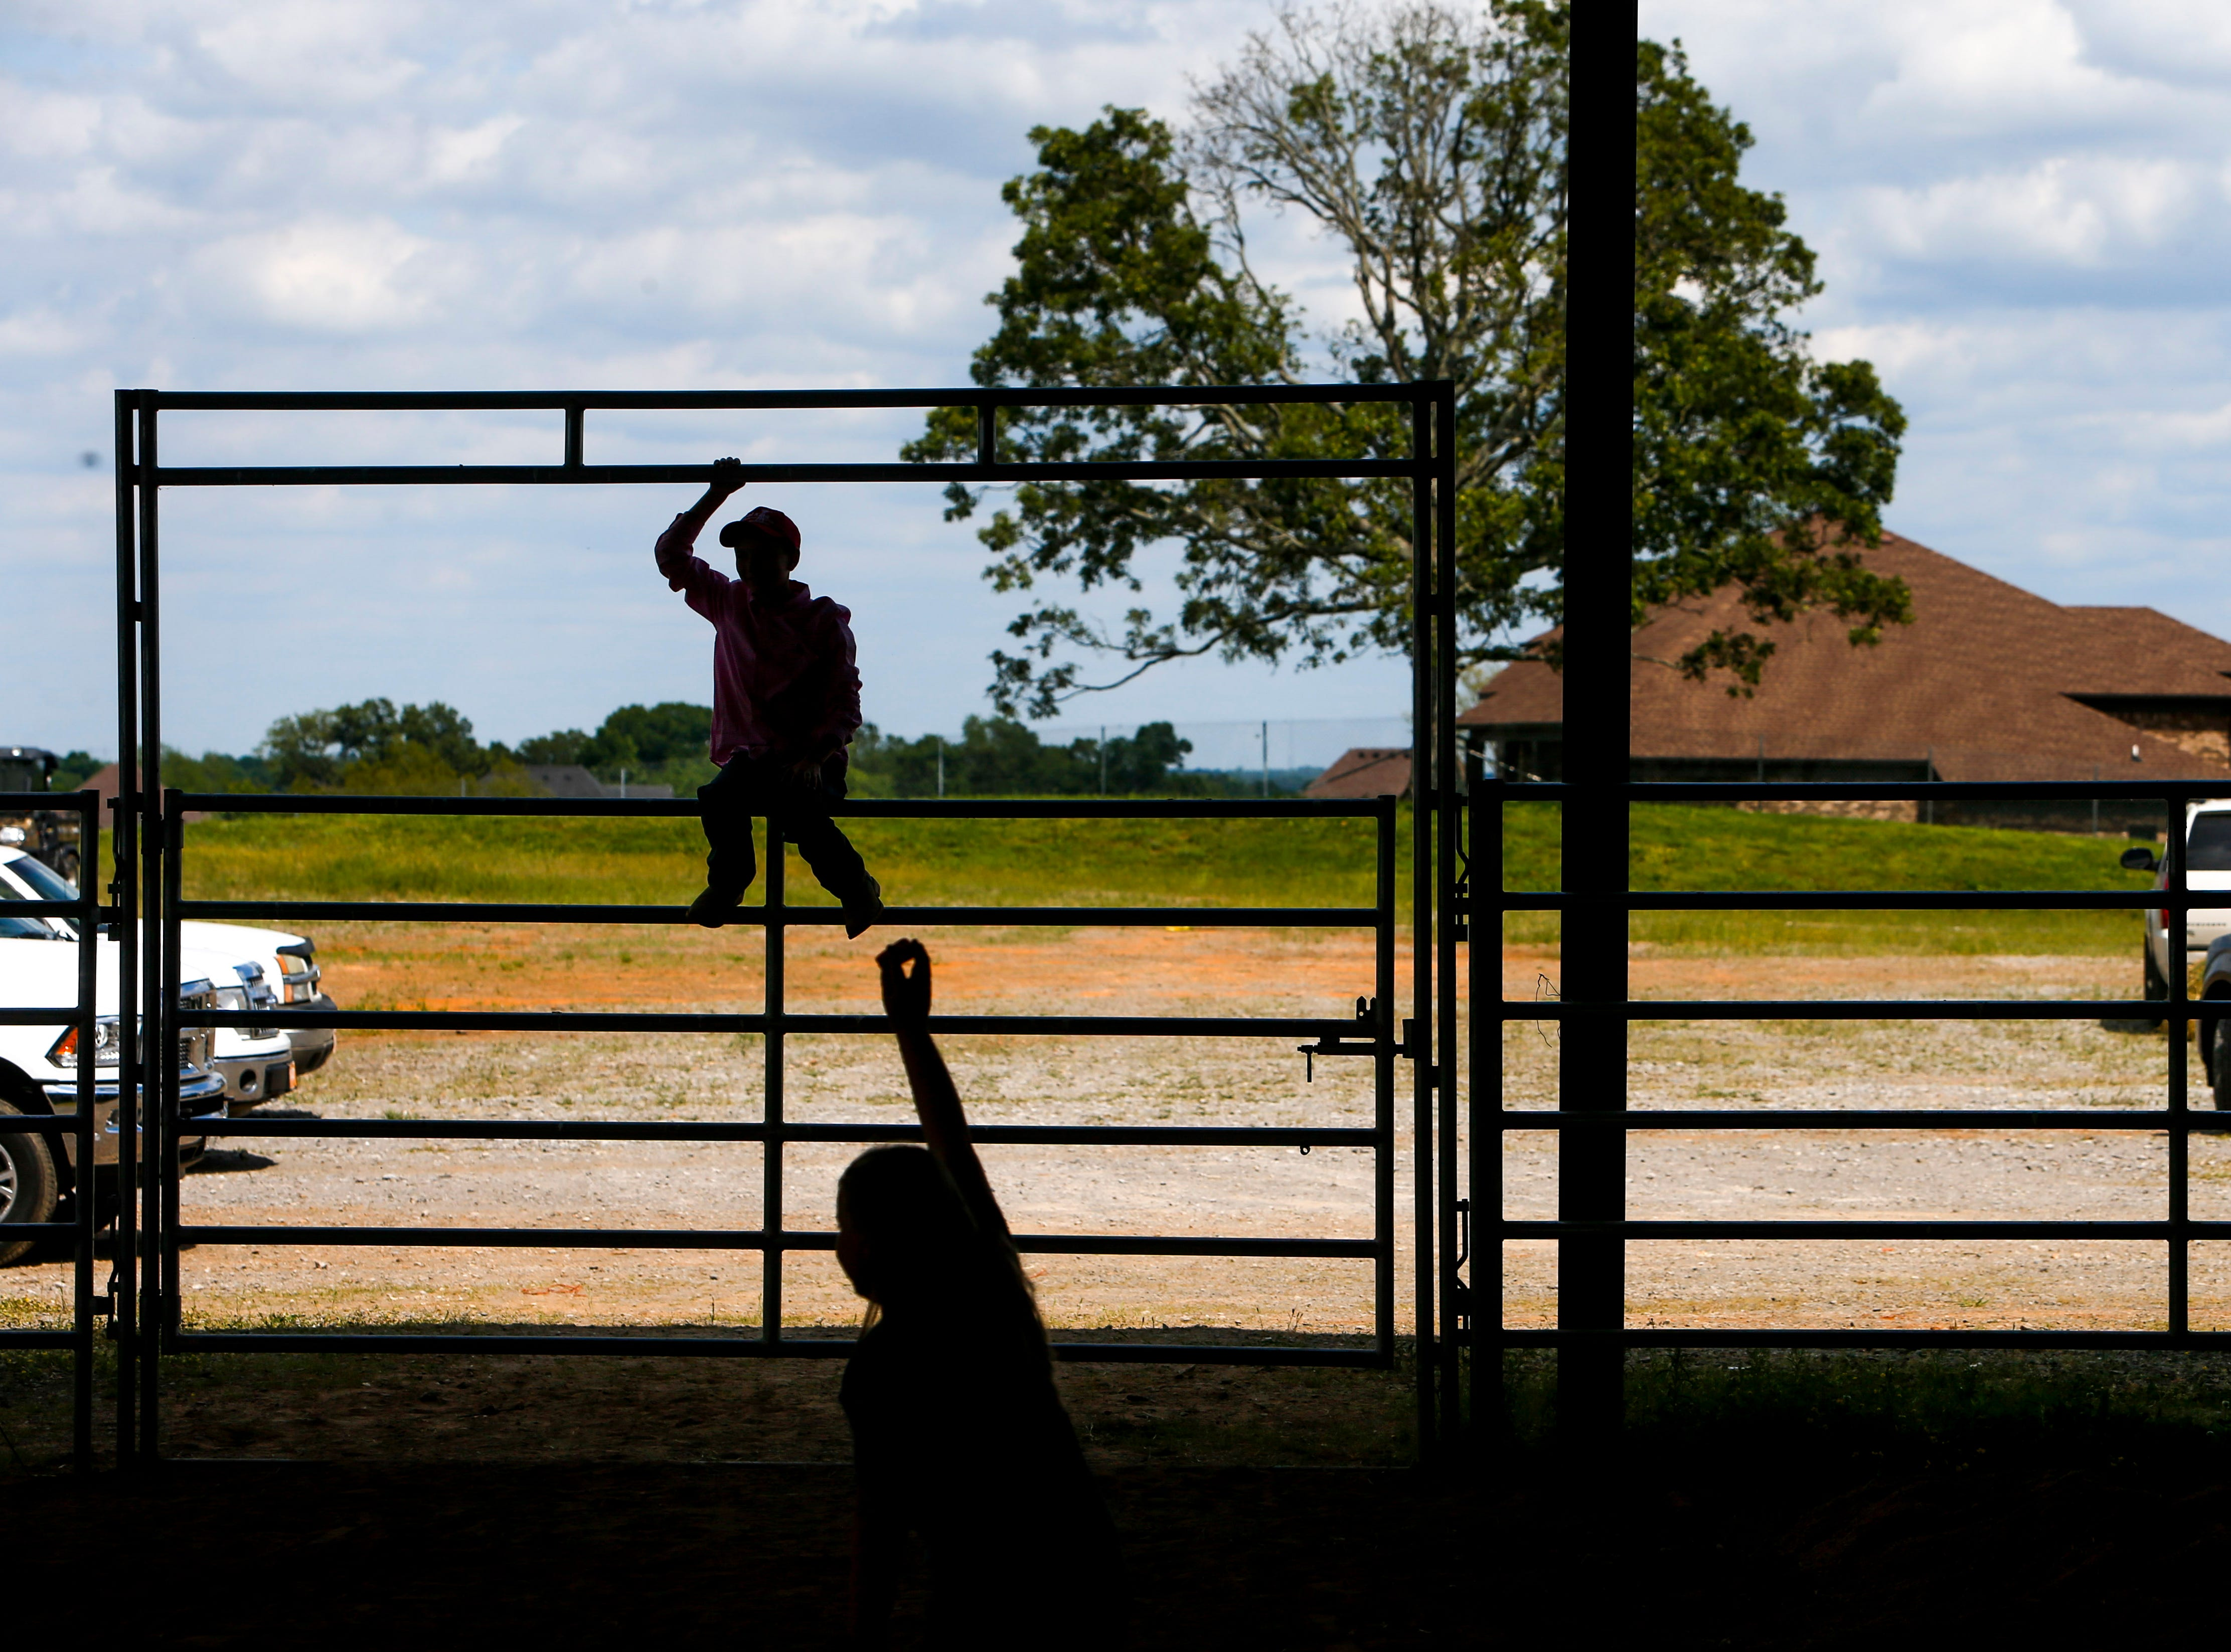 Kids play around and climb the fencing of the large event barn at the 69th annual Clarksville Area Junior Better Beef Show at the John Bartee Agricultural Center in Clarksville, Tenn., on Tuesday, May 14, 2019.